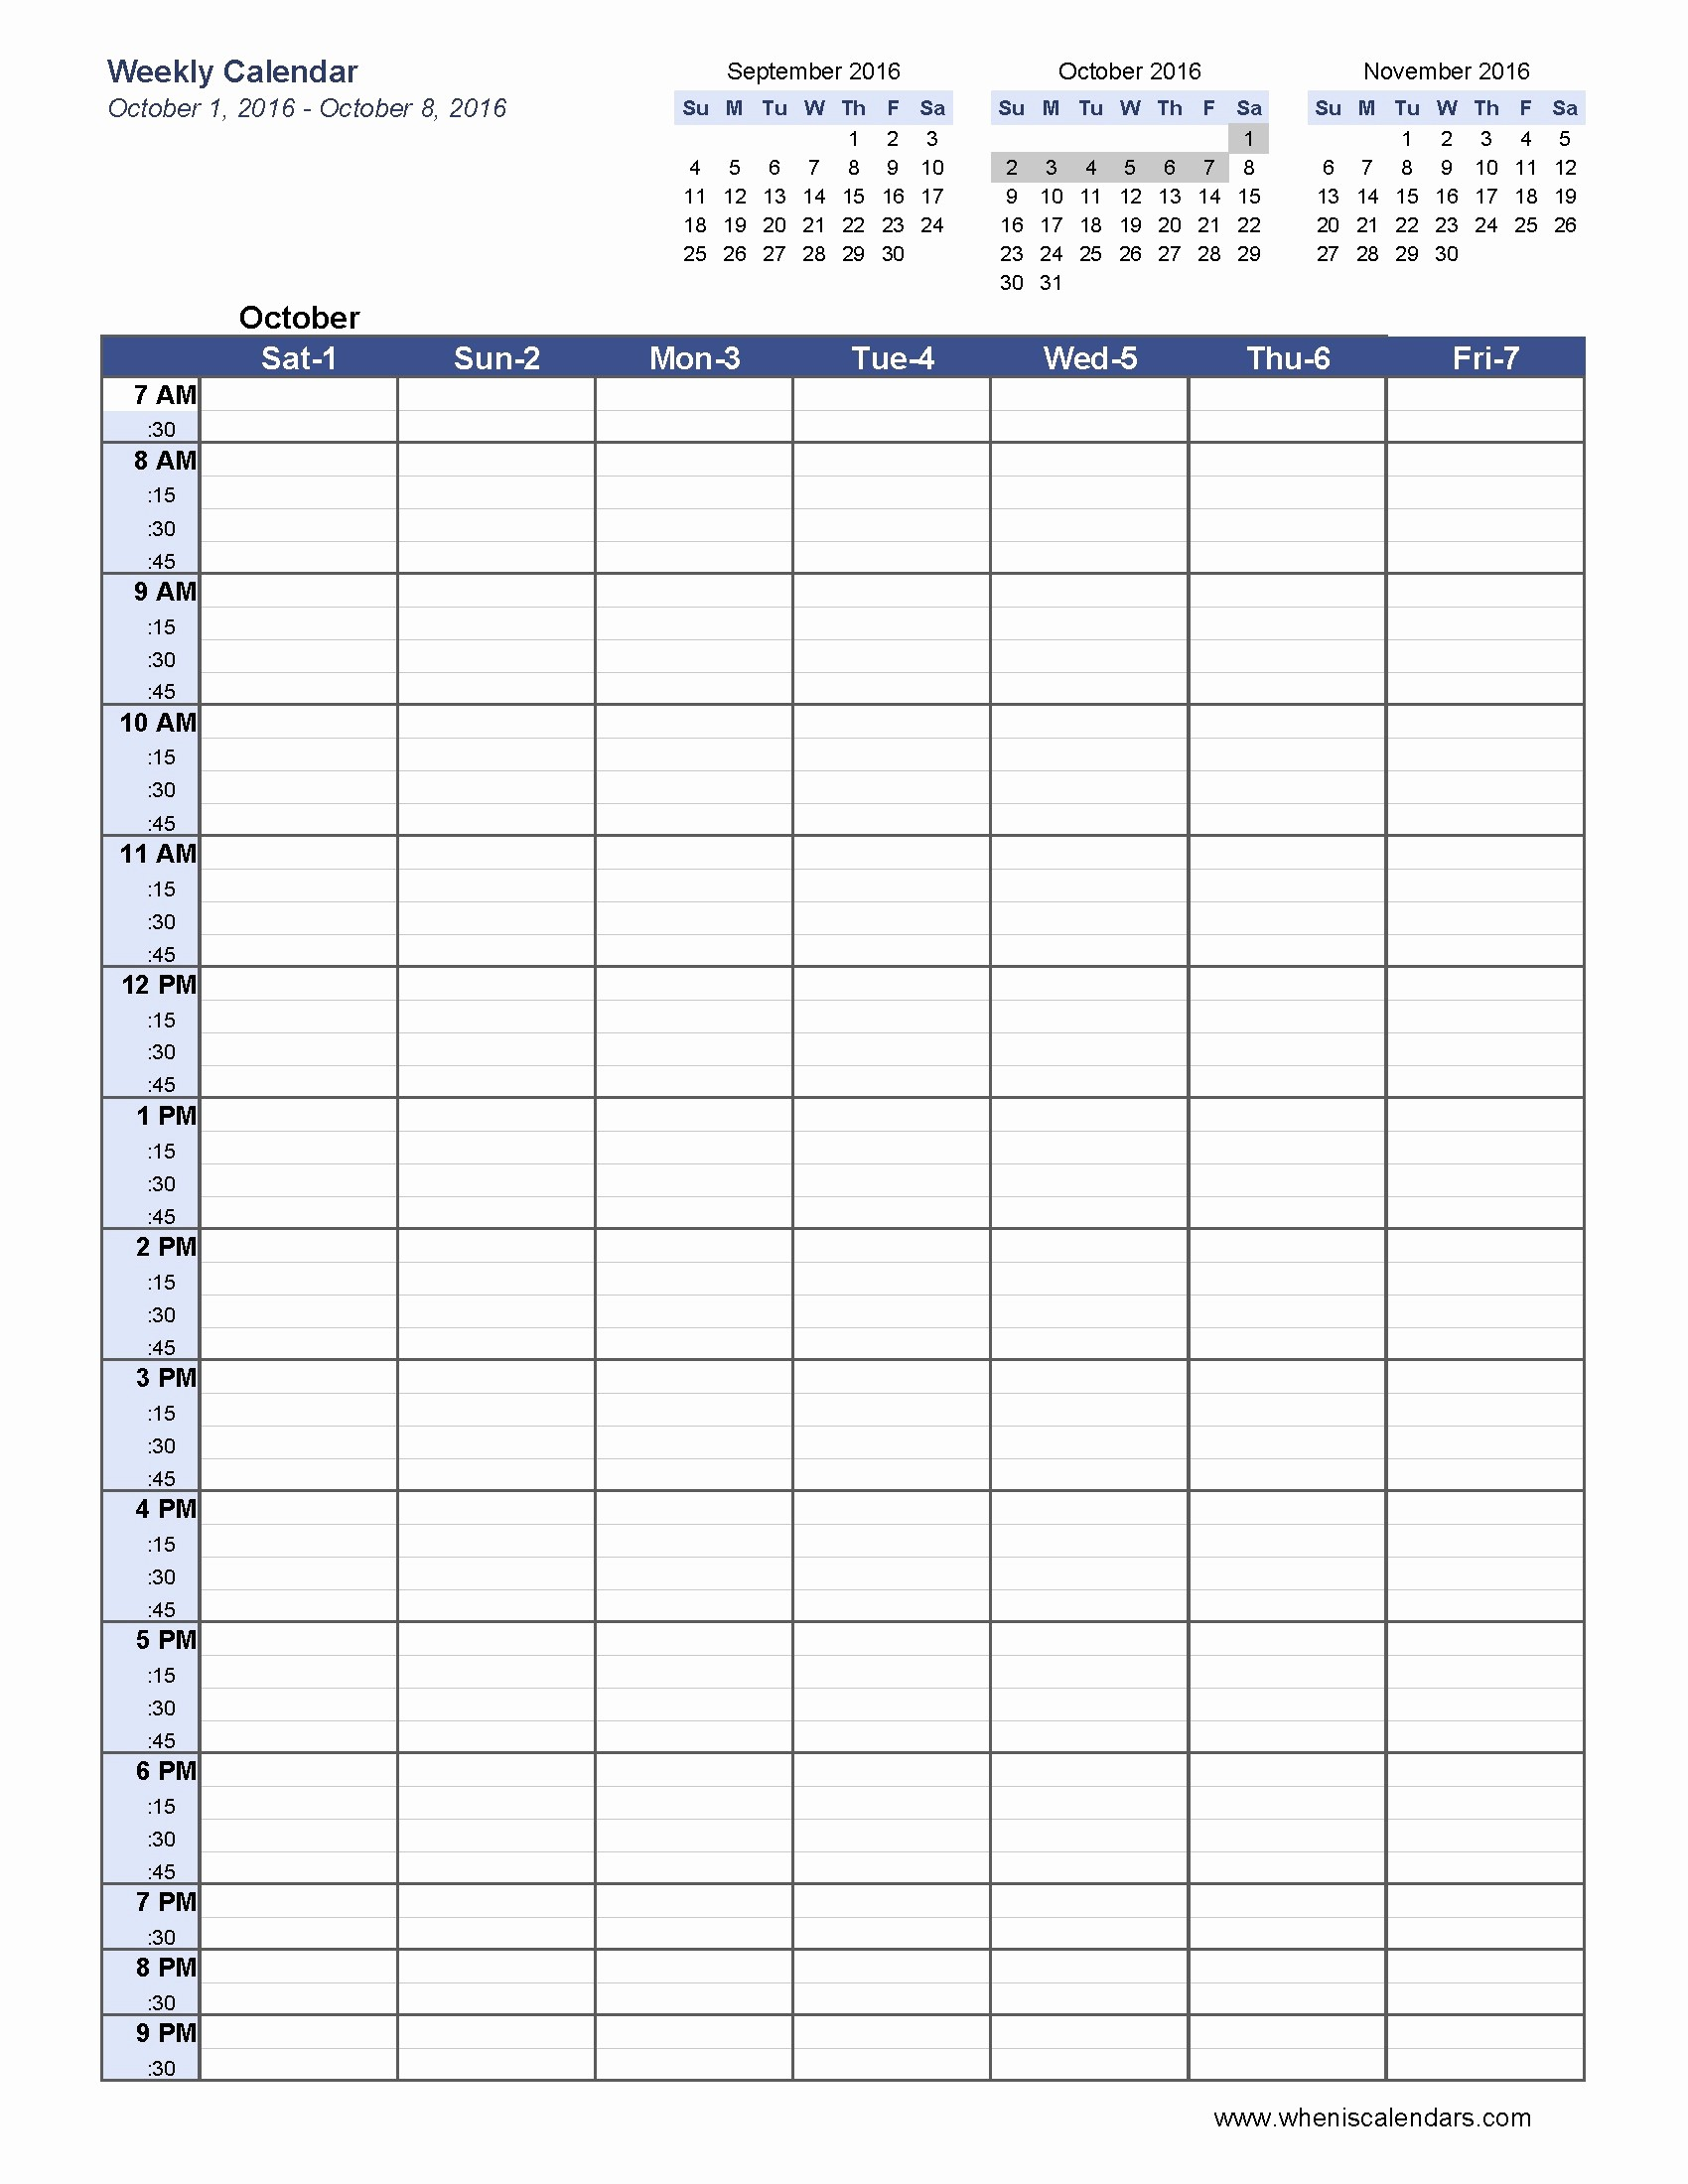 Monthly Timesheet Template Google Docs Luxury Gantt Chart In Google Docs Elegant Weekly Timesheet